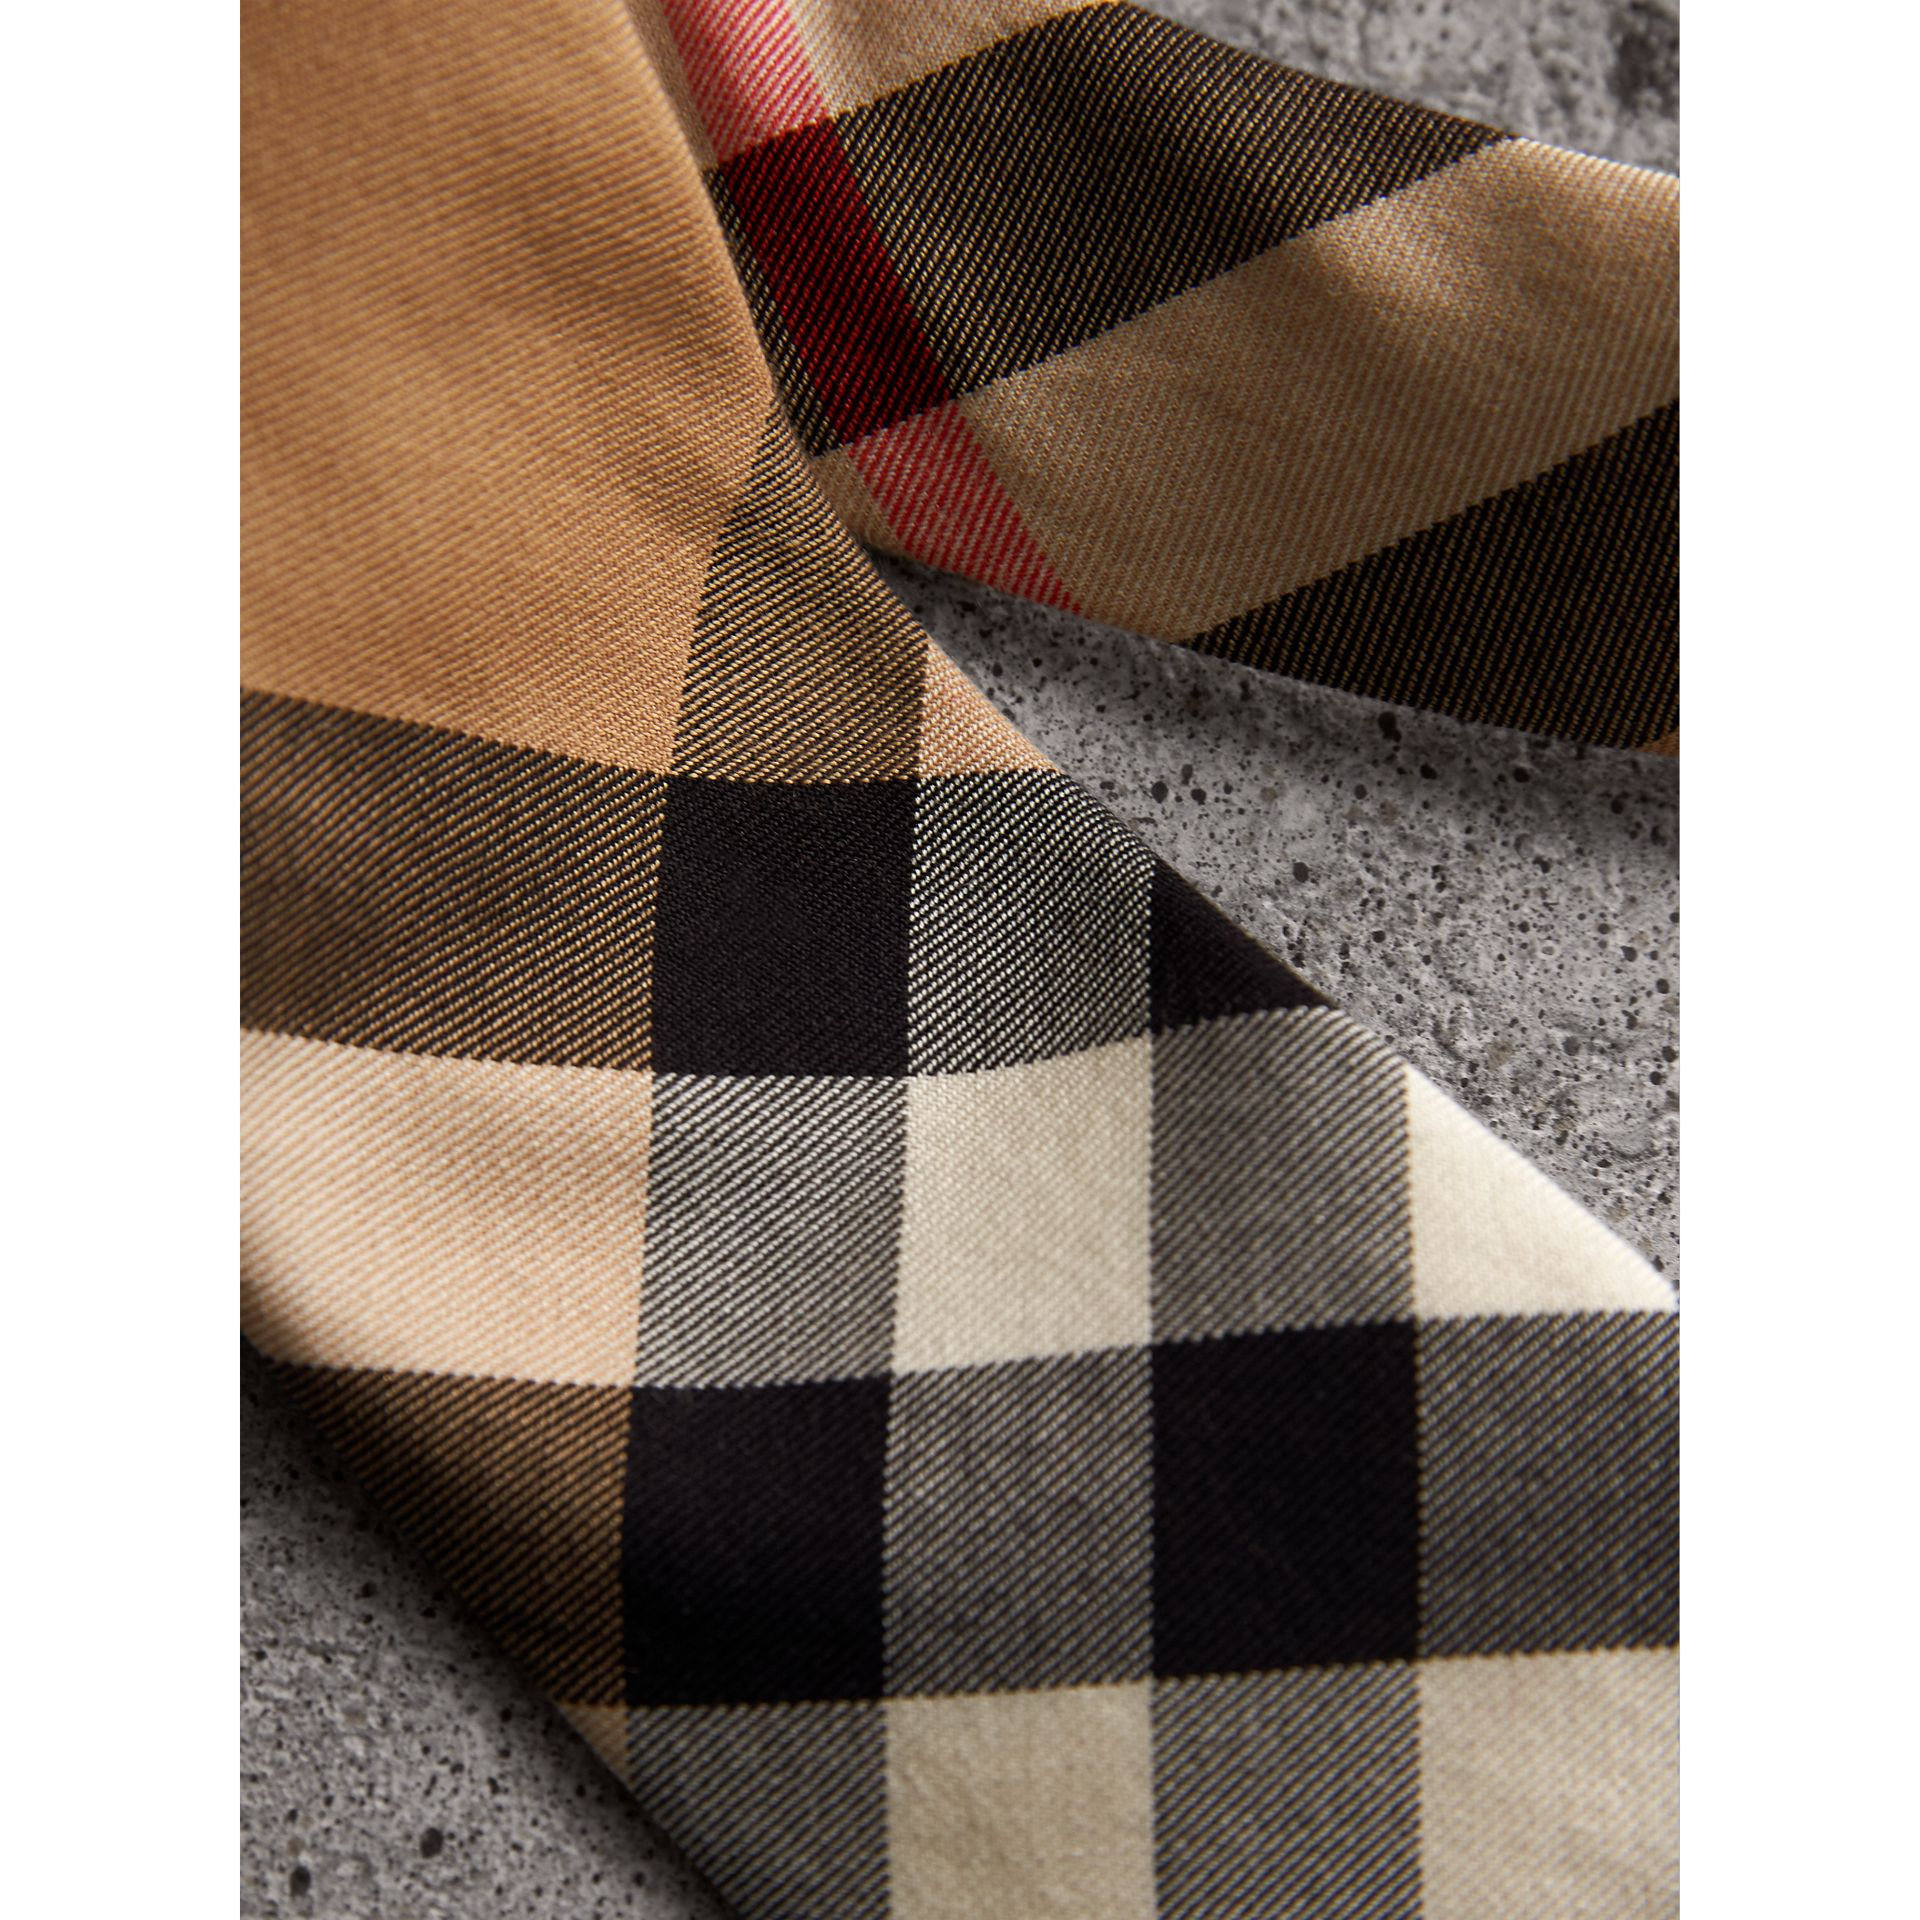 Modern Cut Check Cotton Cashmere Tie in Camel - Men | Burberry Australia - gallery image 1